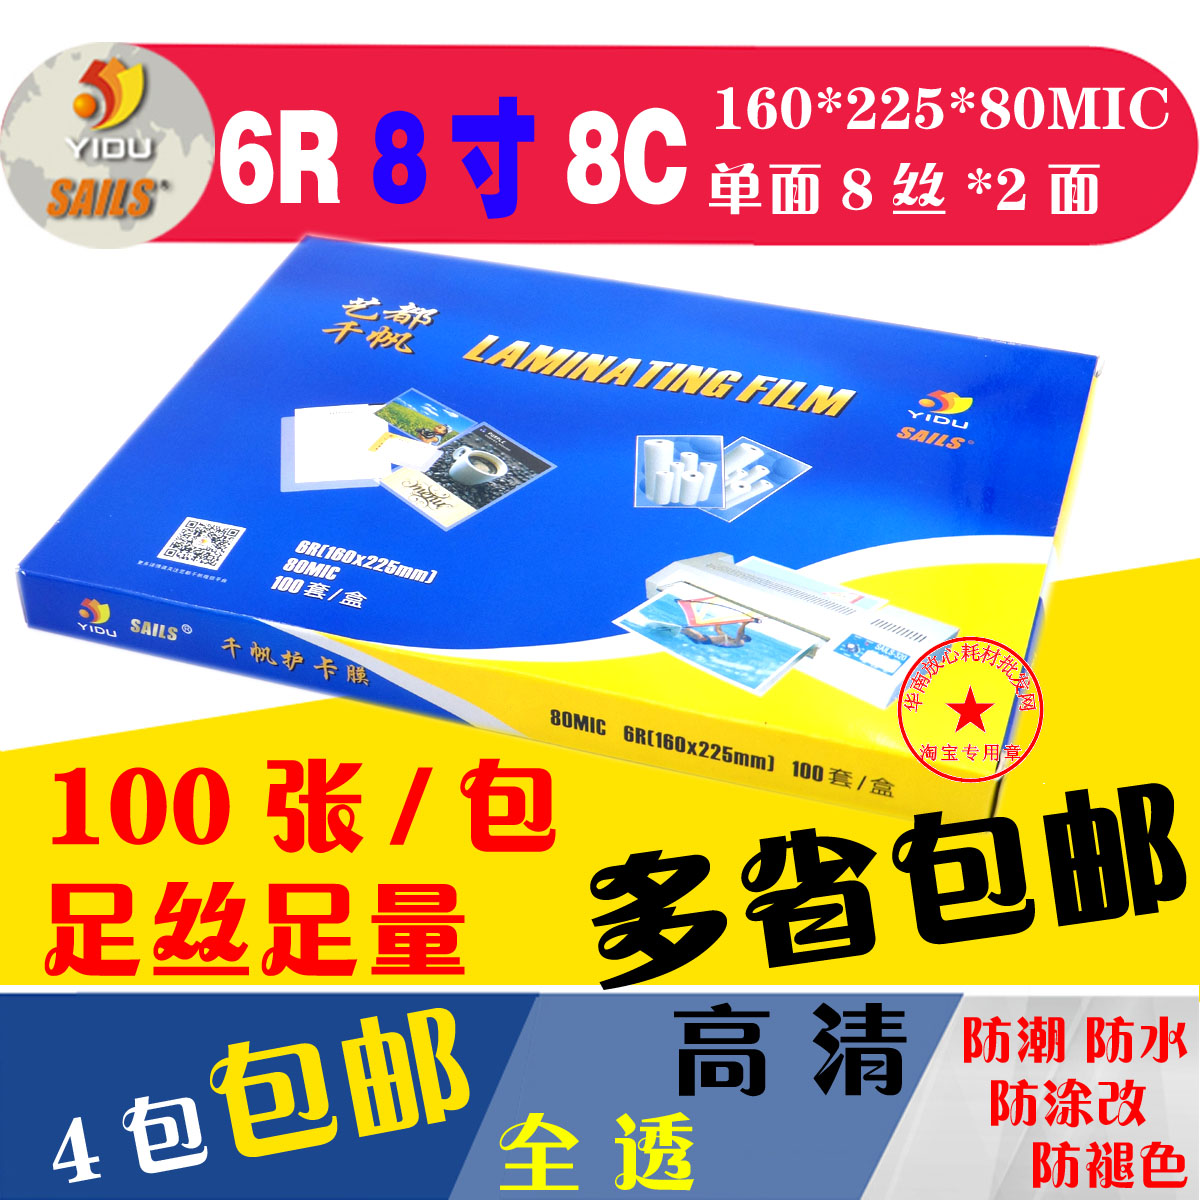 4 bag mail genuine sails had plastic film protective film 8 inch 8C card protection film laminating film 6R 80mic film A5